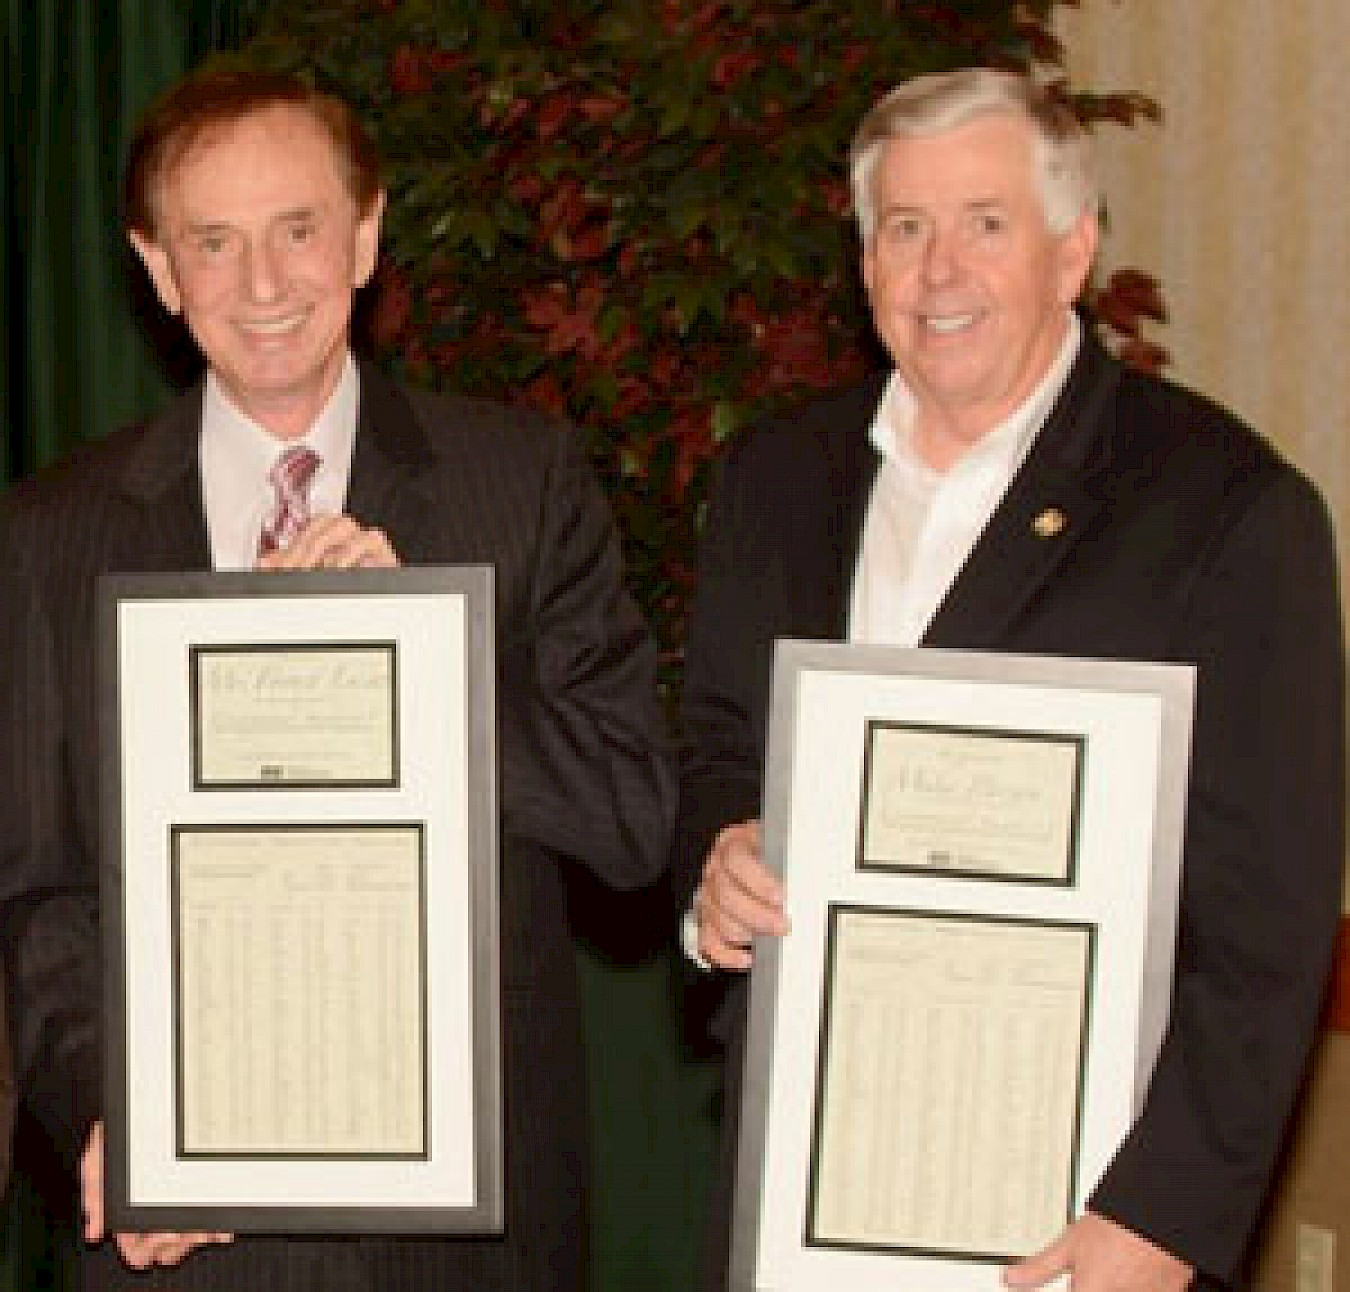 Forrest Lucas and Senator Mike Parson Honored For Missouri Amendment 1 Work